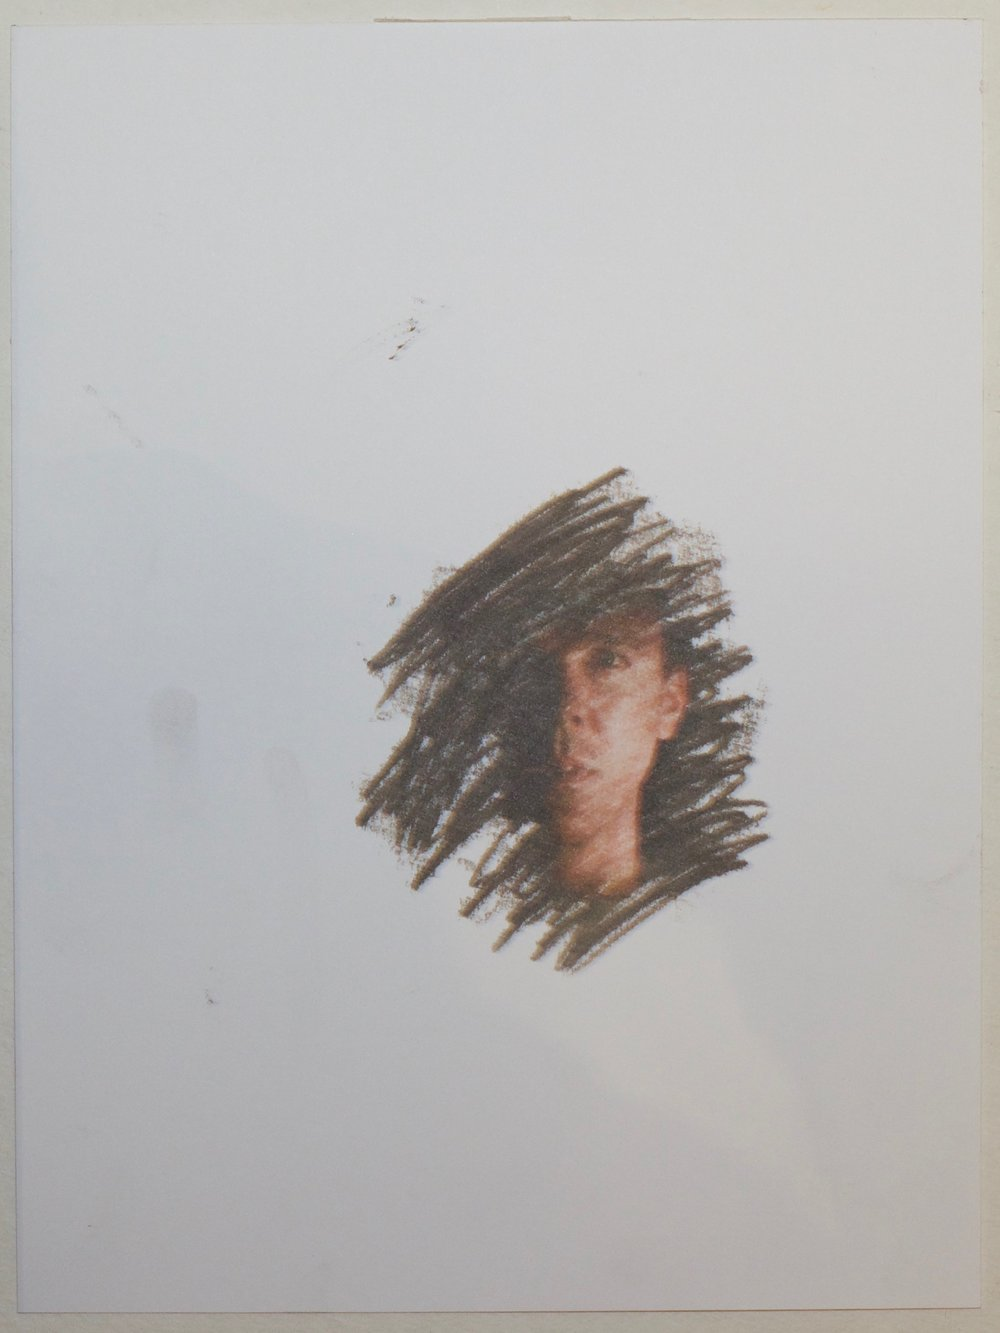 Self-portrait as myself in 2007